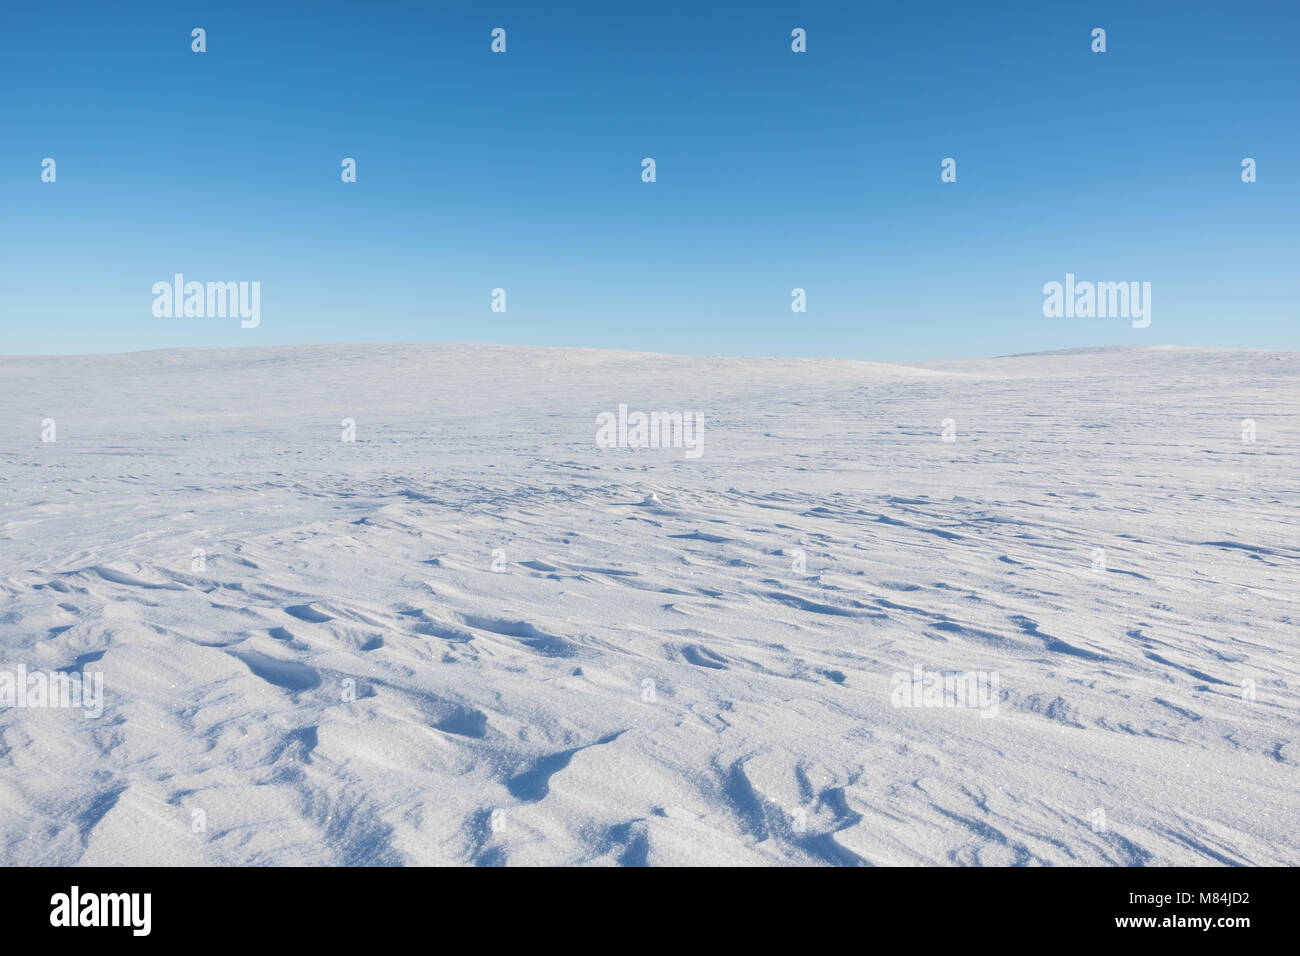 Finnmark. Sunny day at the flat mountain plateau Finnmarksvidda in Northern Norway. - Stock Image